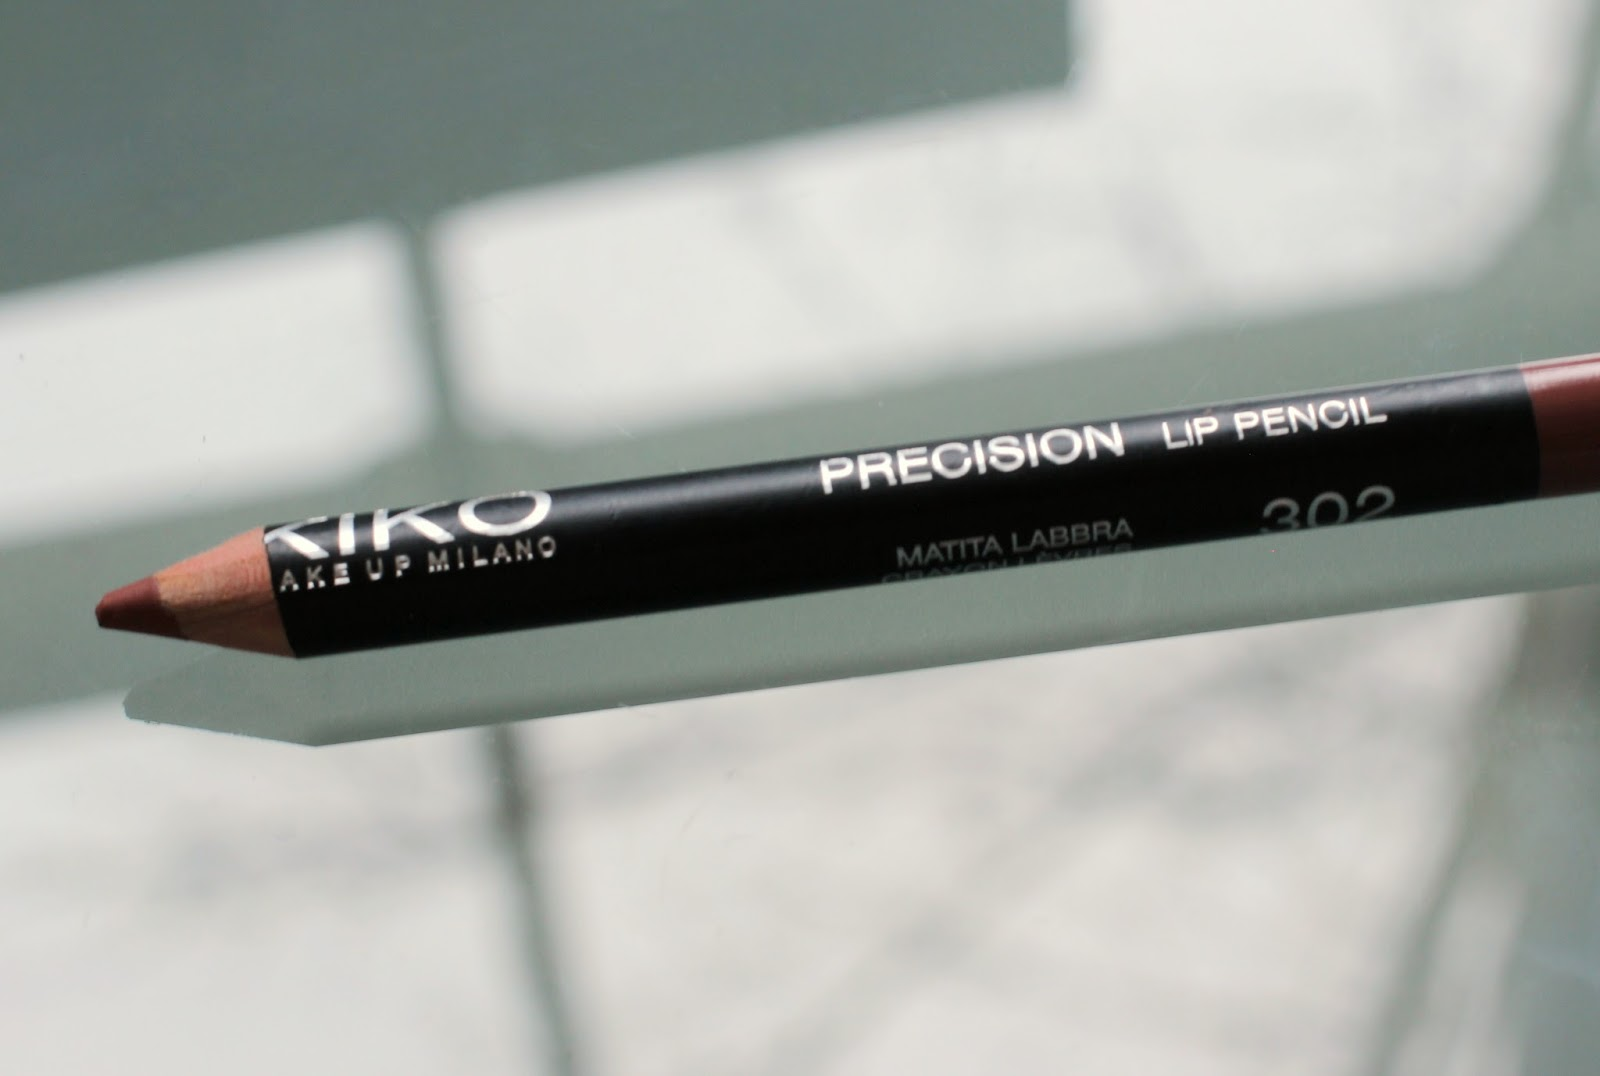 KIKO Precision Lip Pencil 302 Review